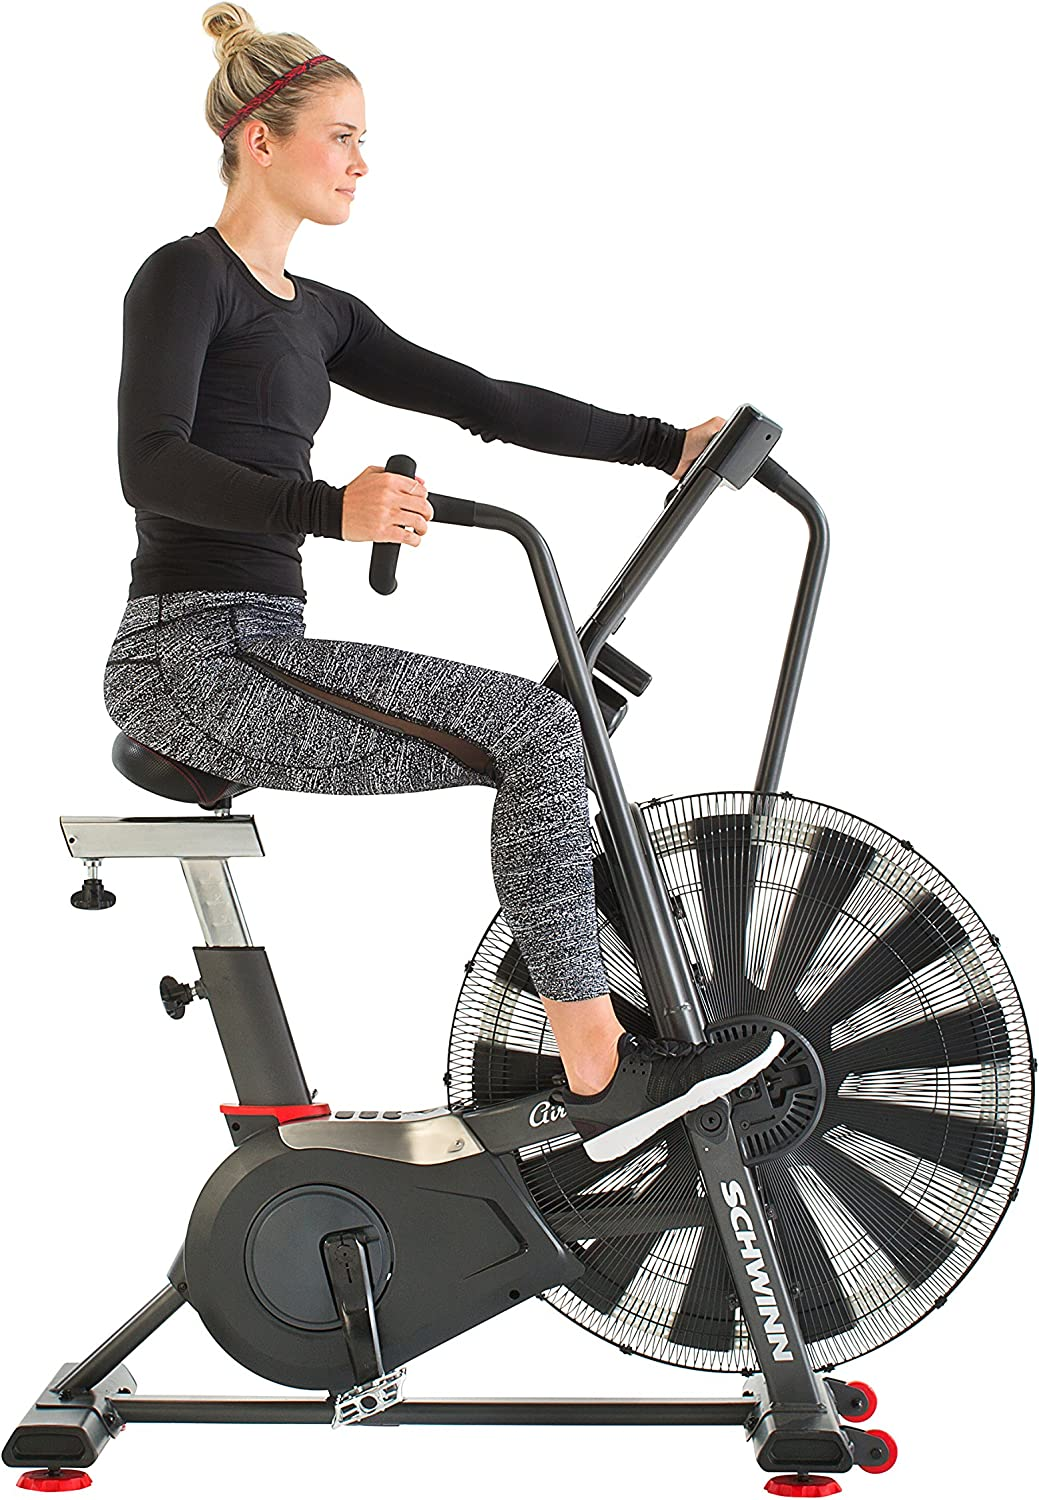 Schwinn Exercise Bike reviews of 2020 - Top 3 Model 1